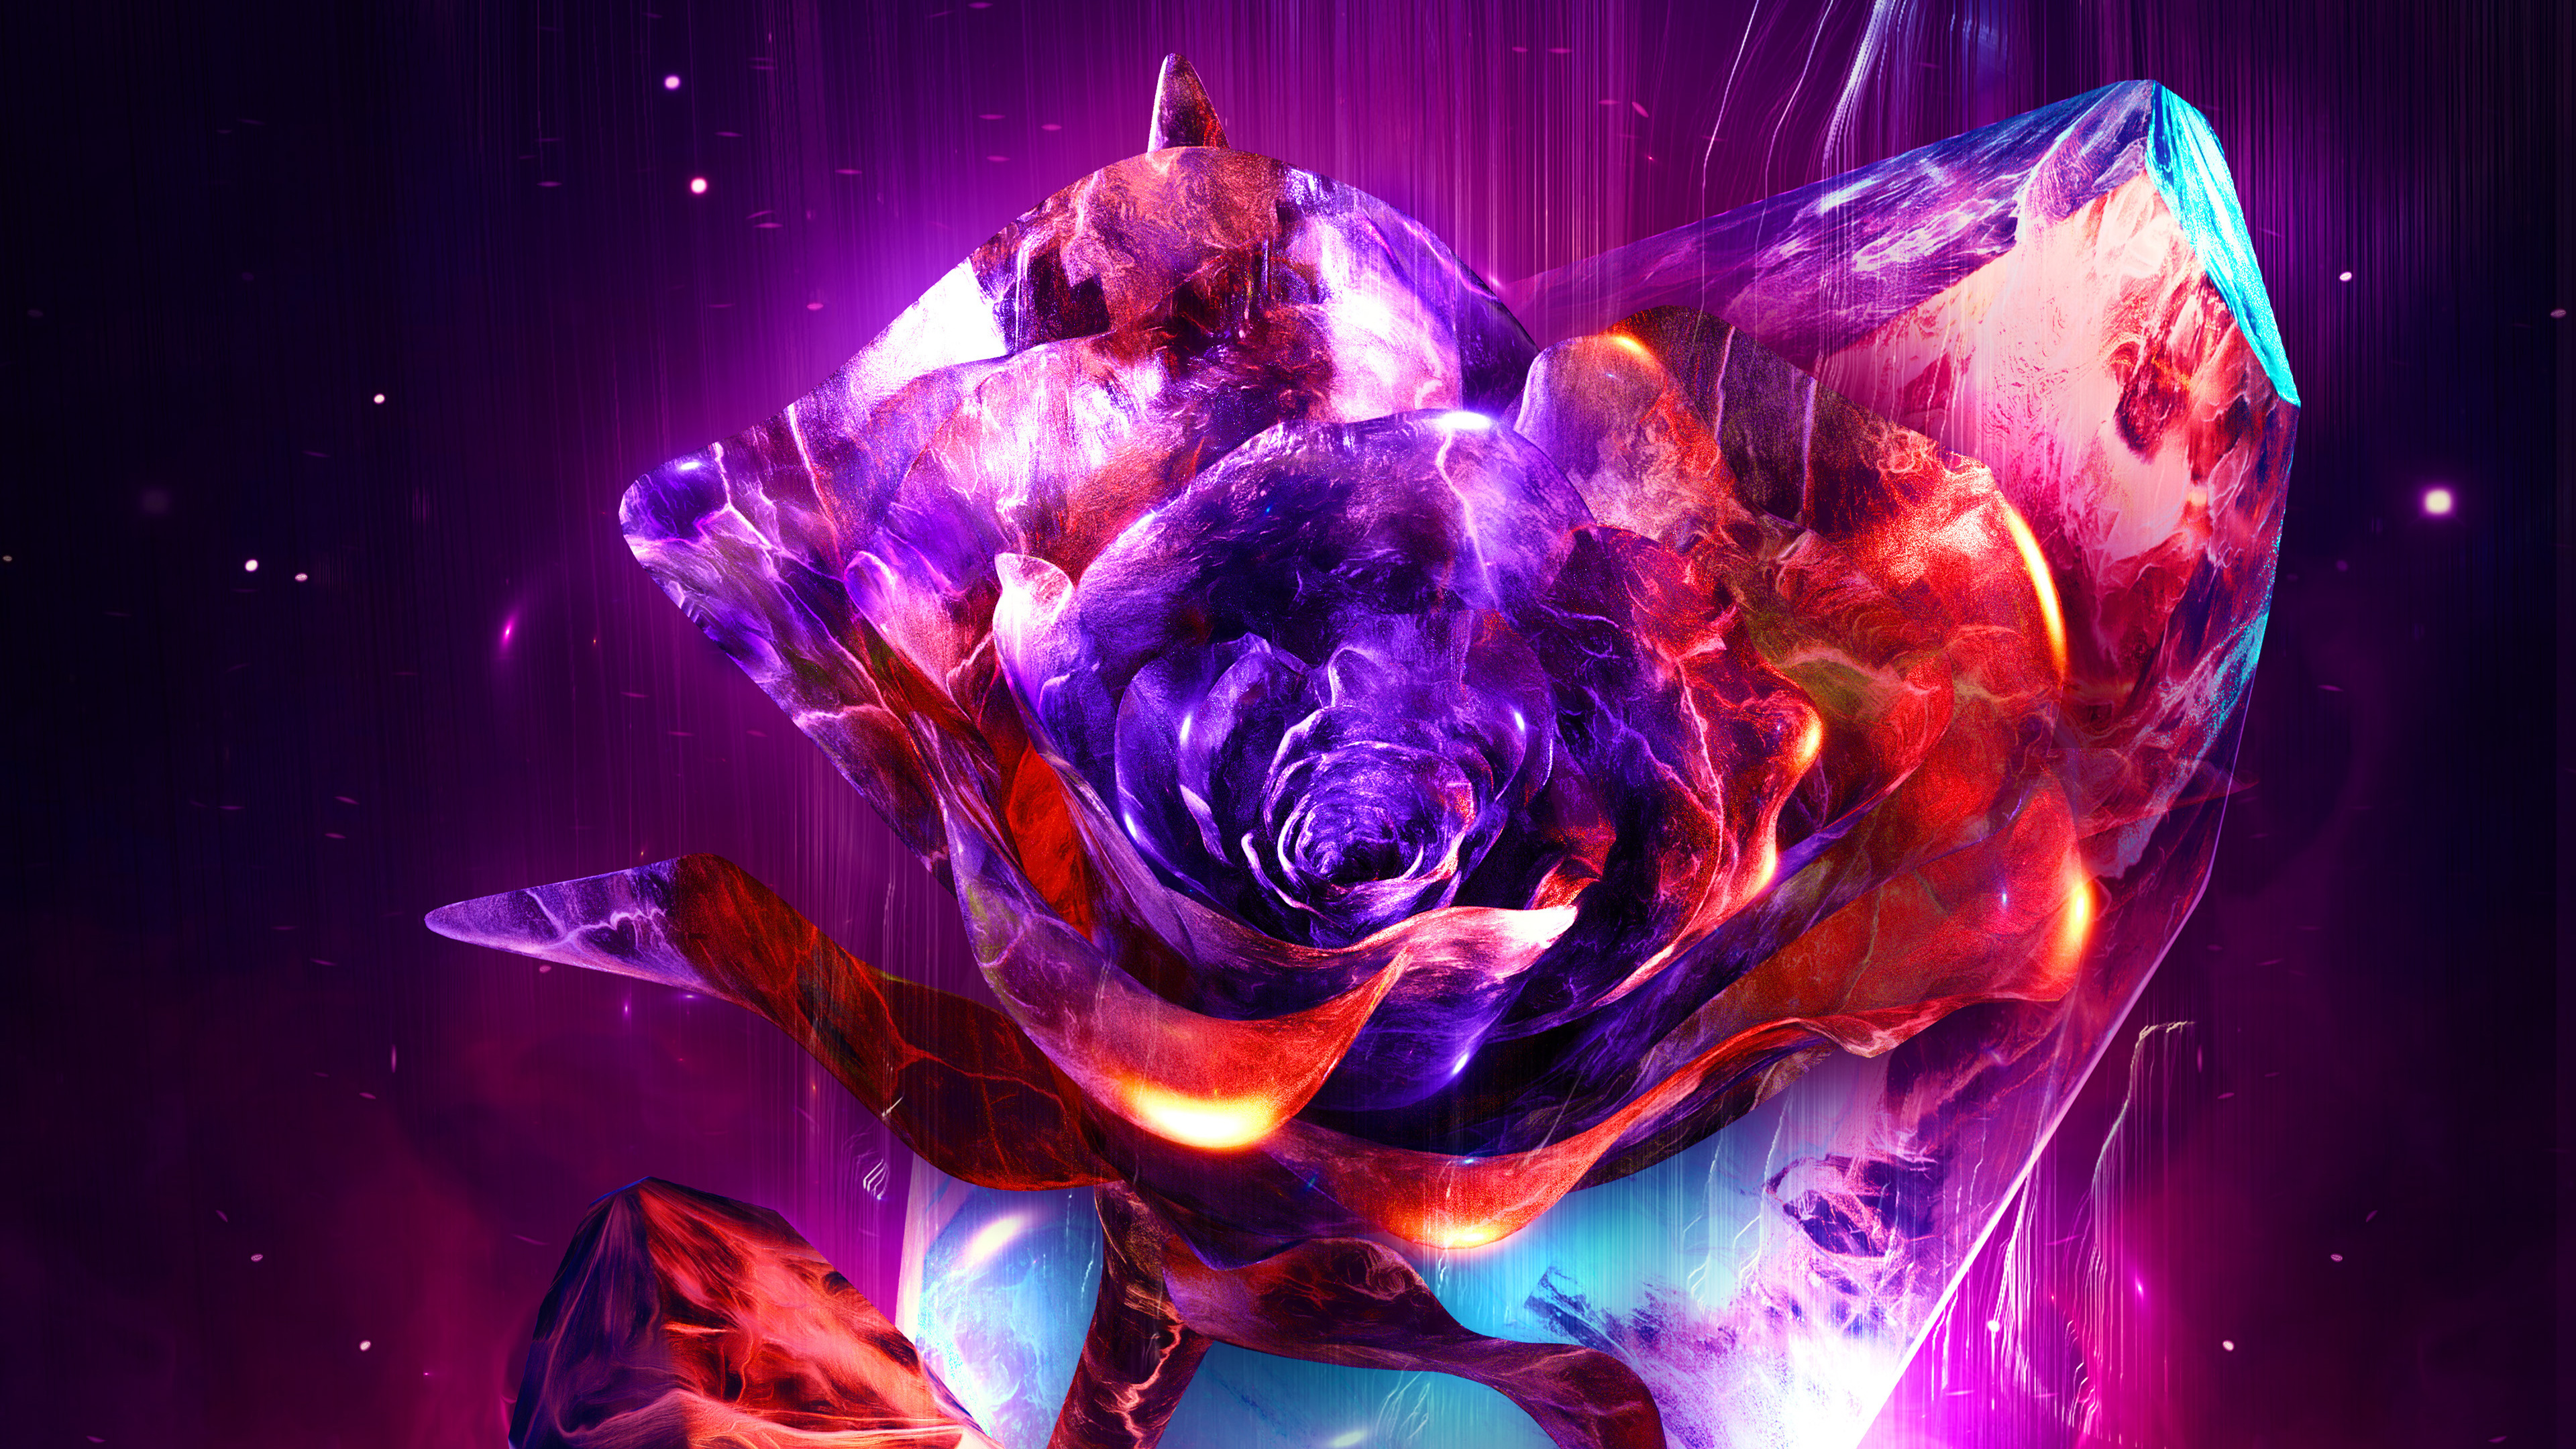 1366x768 Rose Abstract 4k 1366x768 Resolution HD 4k